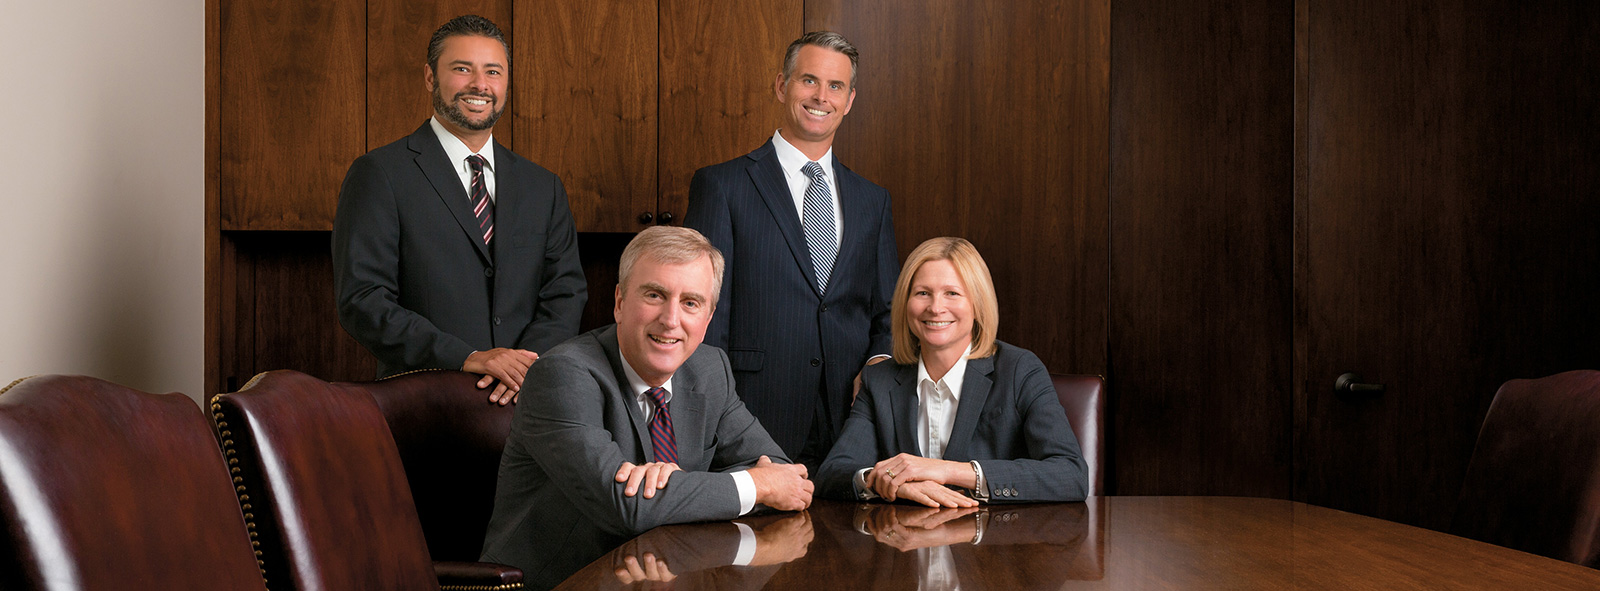 Image of First Republic Law Firms / Attorneys client(s) Price, Postel & Parma LLP